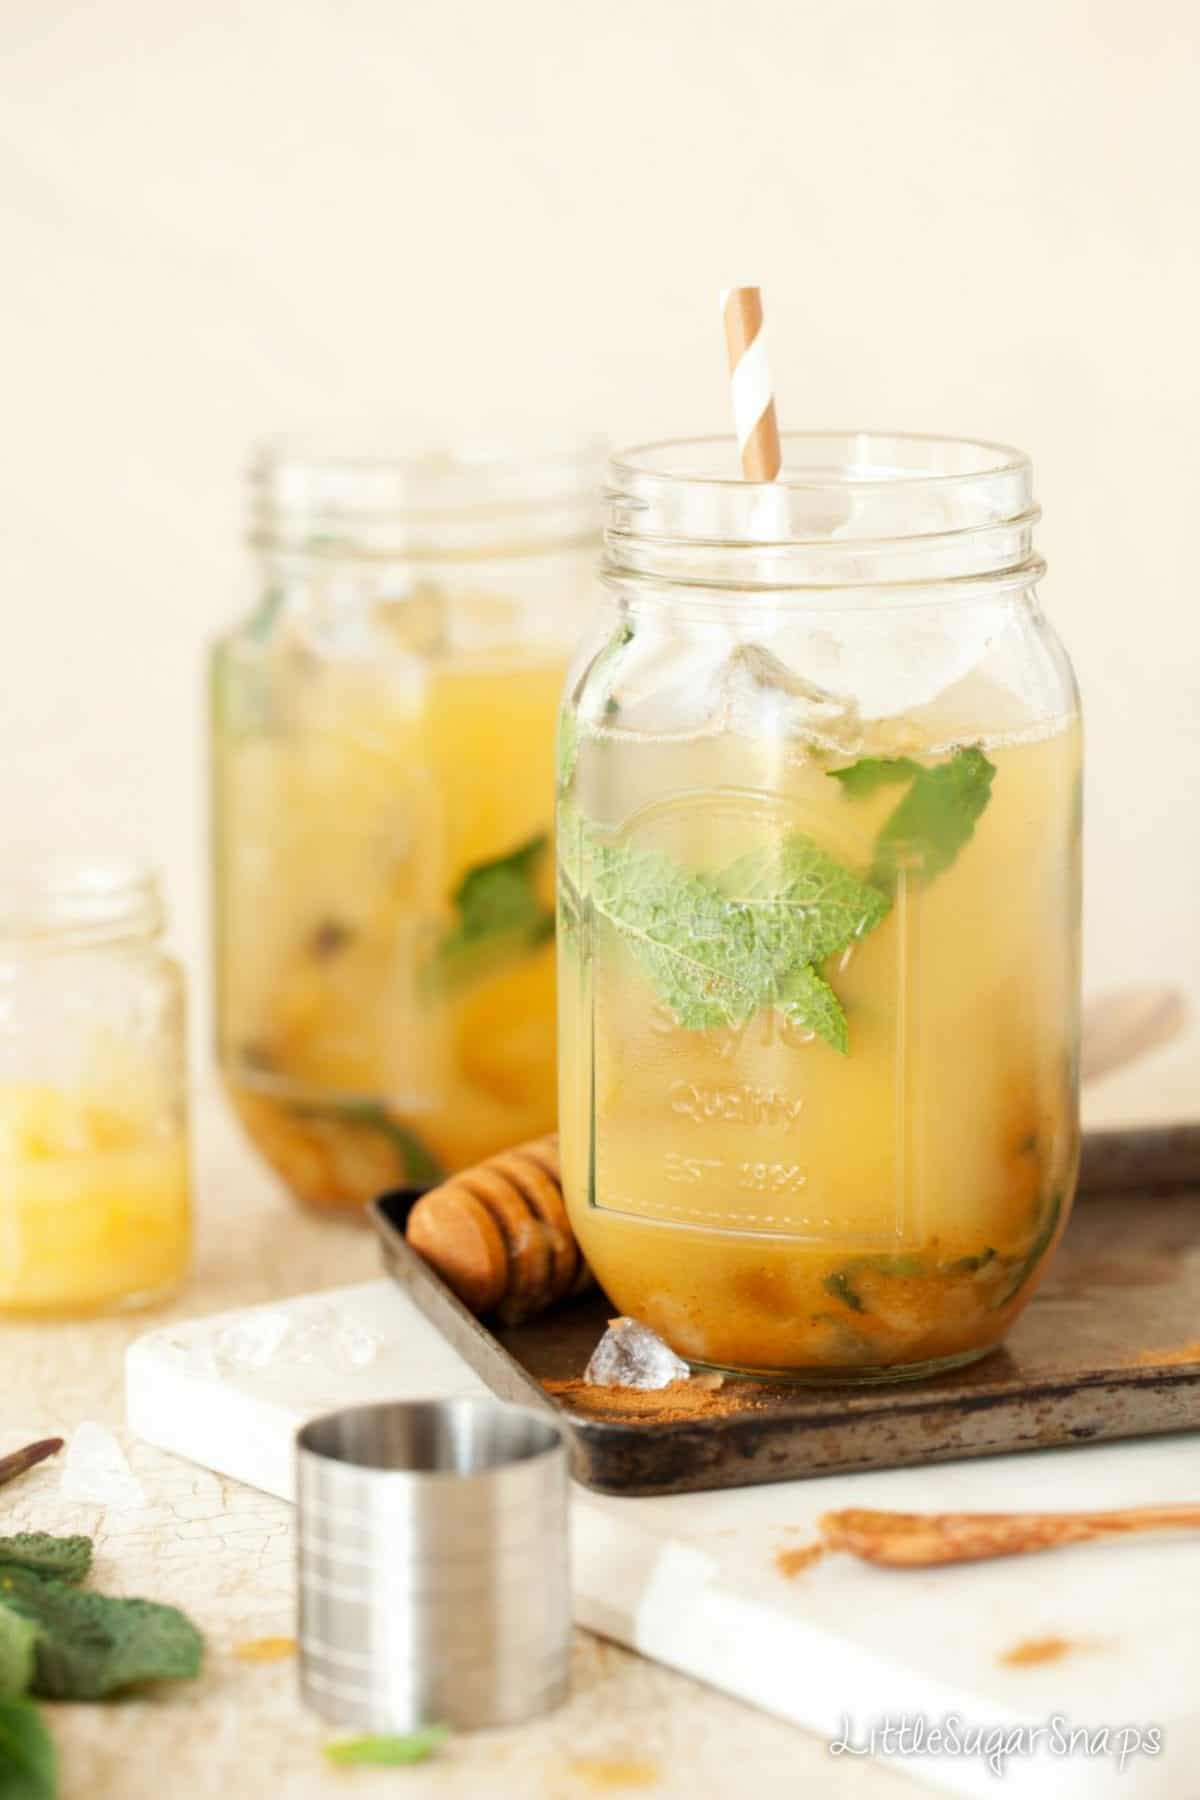 Bourbon, pineapple & pear cocktails with mint. Served in jam jars.